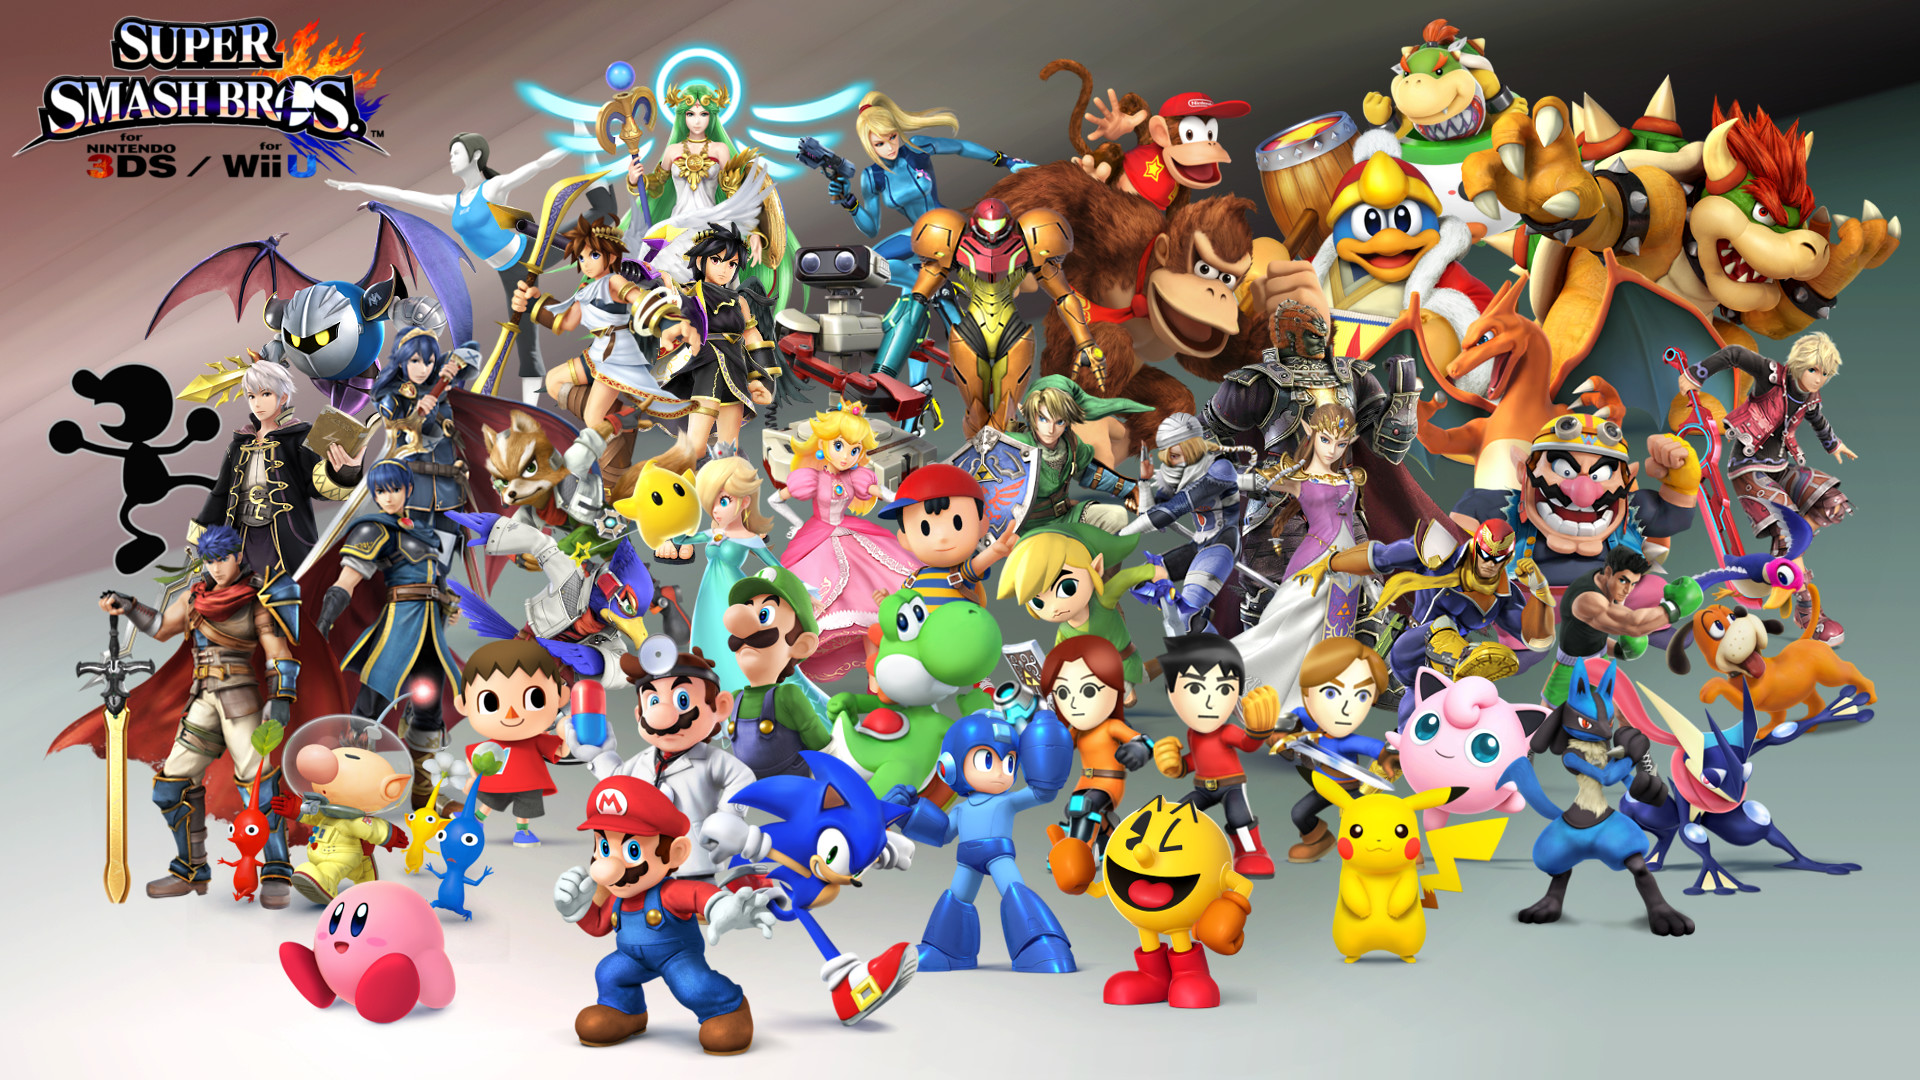 Mewkwota Super Smash Bros 4: Super Smash Brothers Wallpaper (75+ Images